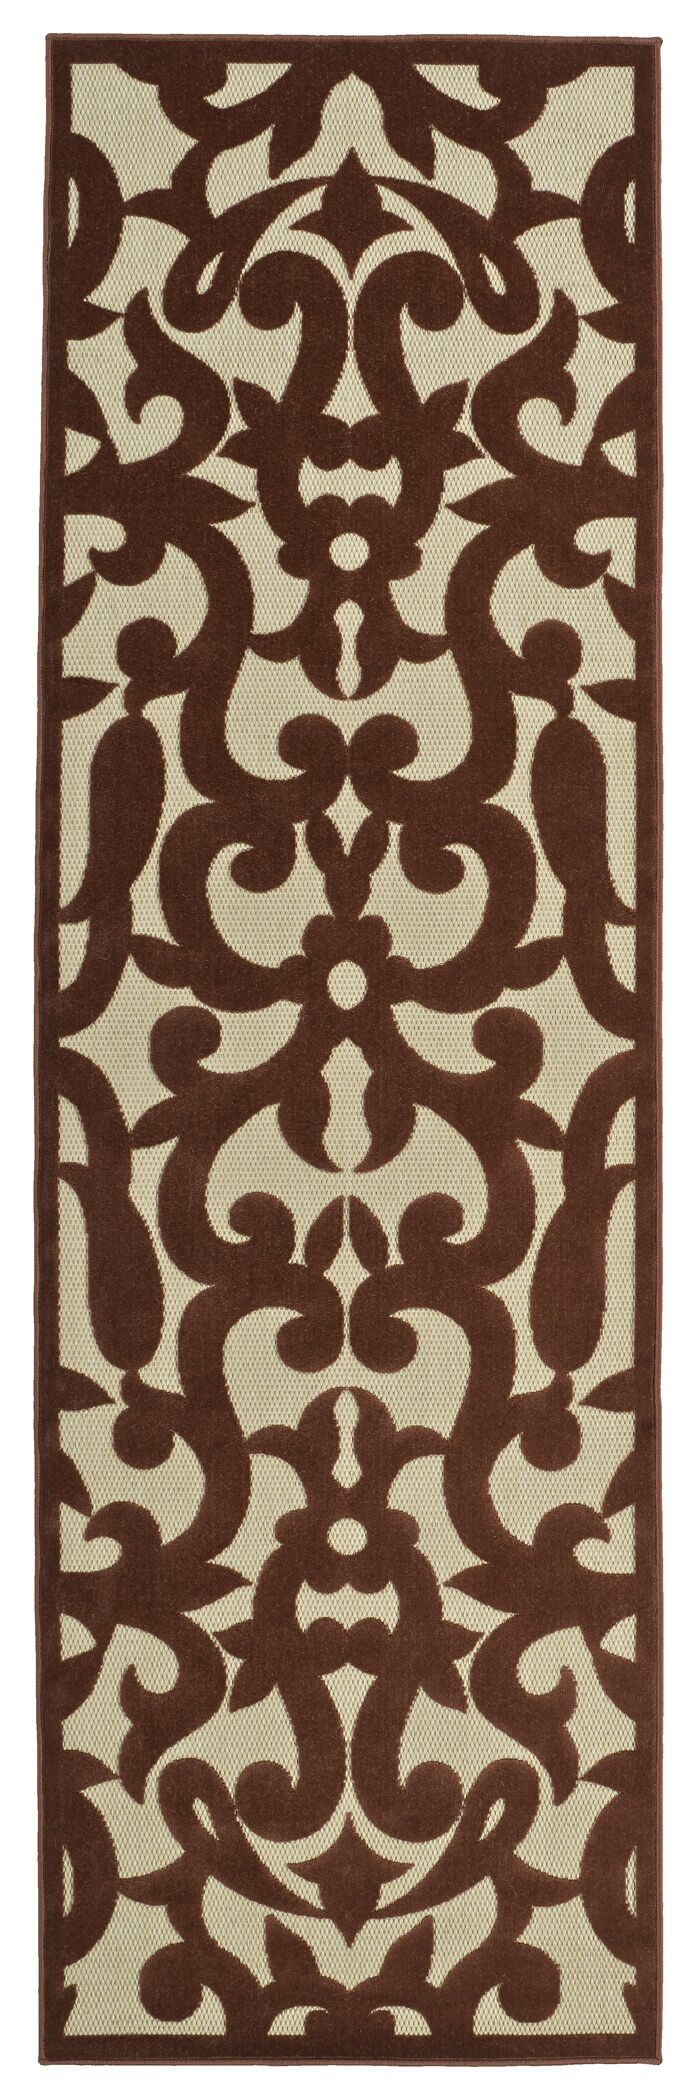 Covedale Machine Woven Terracotta Indoor/Outdoor Area Rug Rug Size: Rectangle 8'8